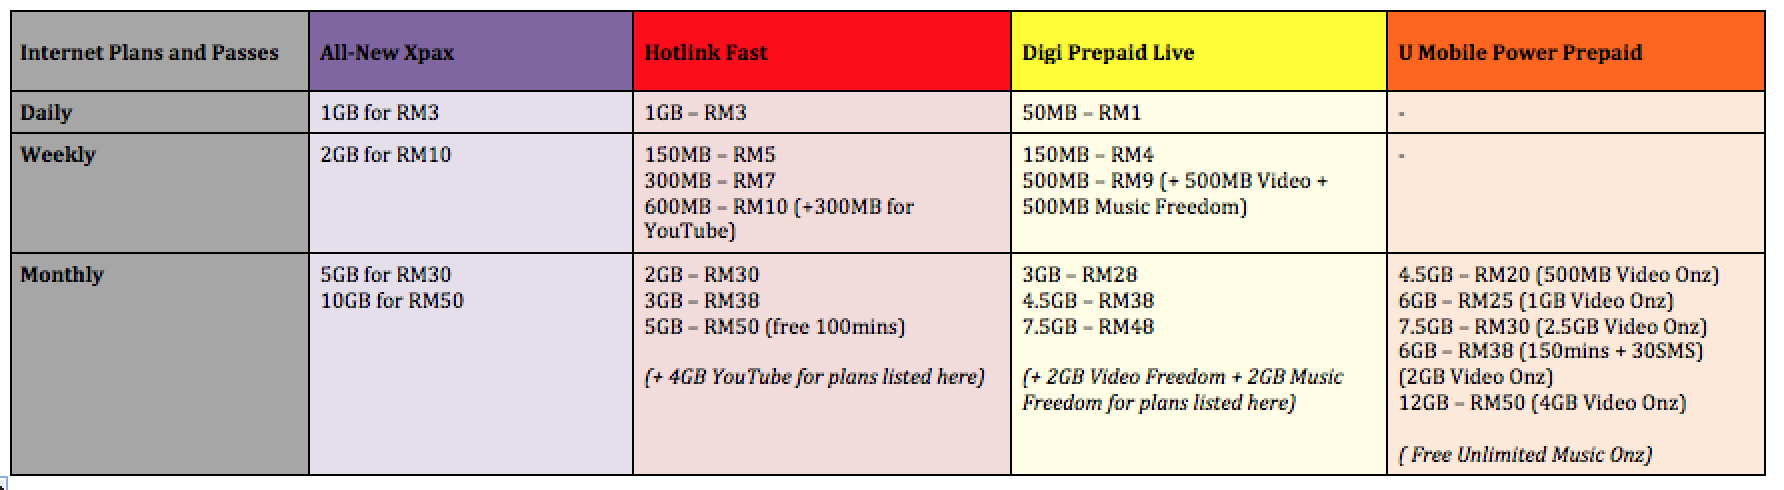 Internet Plans and Passes - Xpax vs Hotlink Fast vs Digi Prepaid Live vs U Mobile Power Prepaid